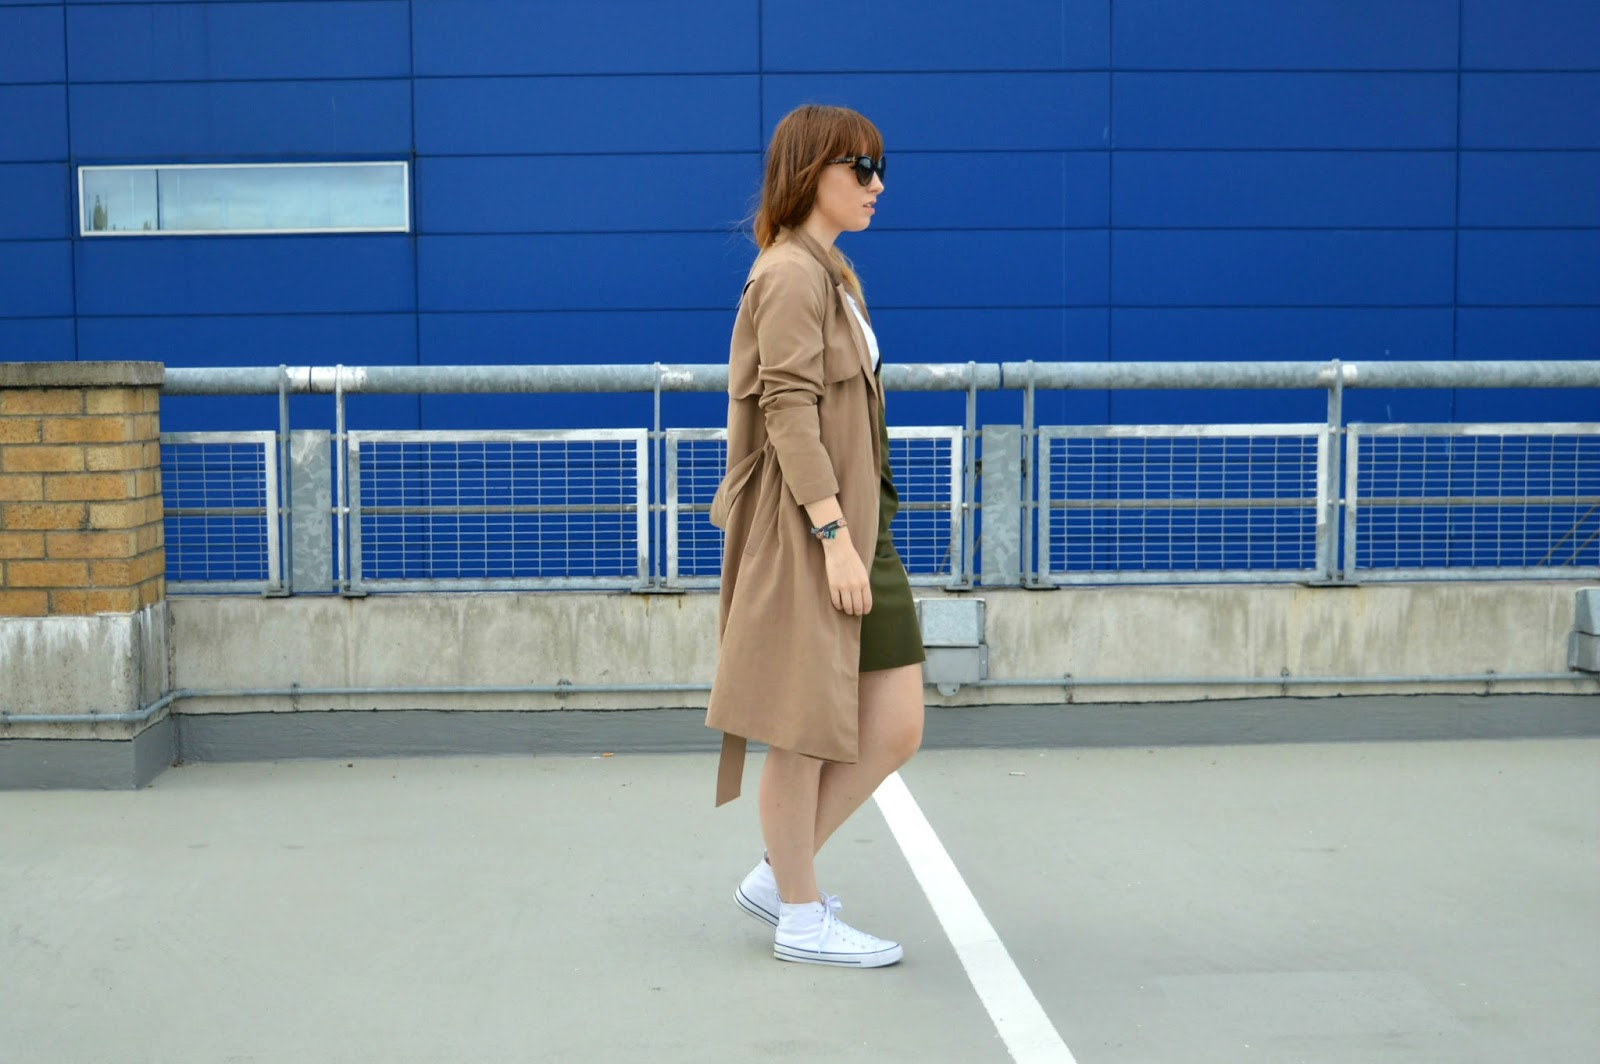 zara dress, primark coat, camel coat, personal style blogger, fashion blogger